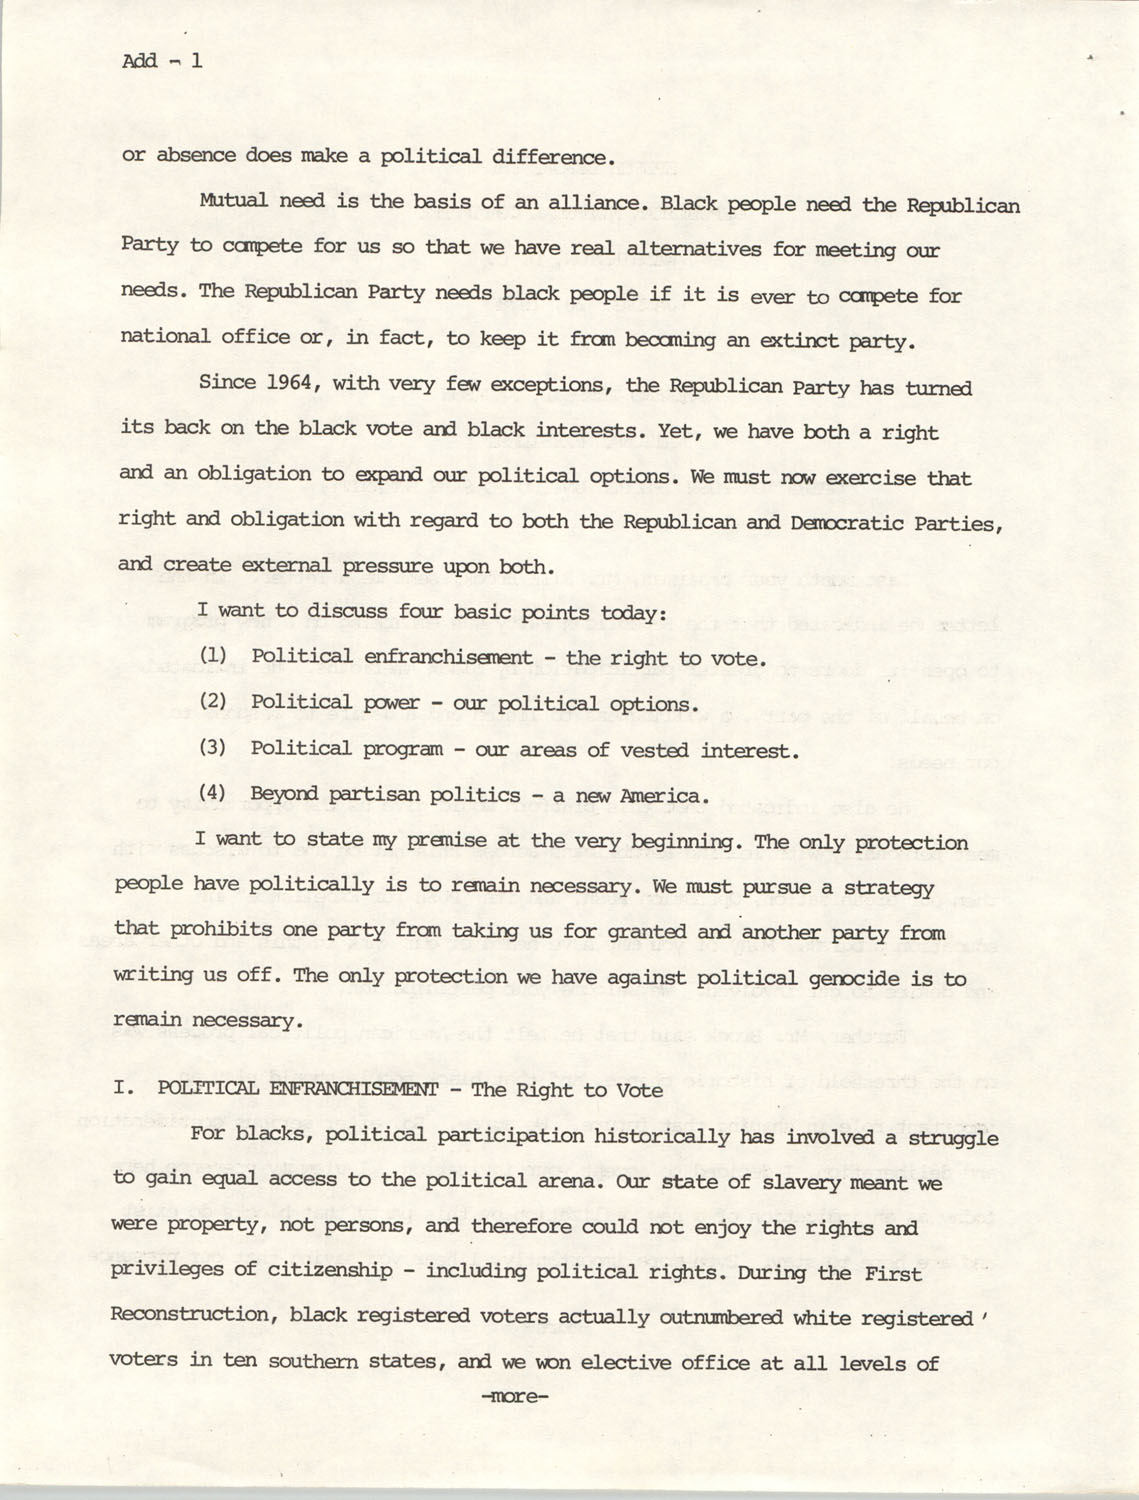 Speech Before the Republican National Committee, Page 1